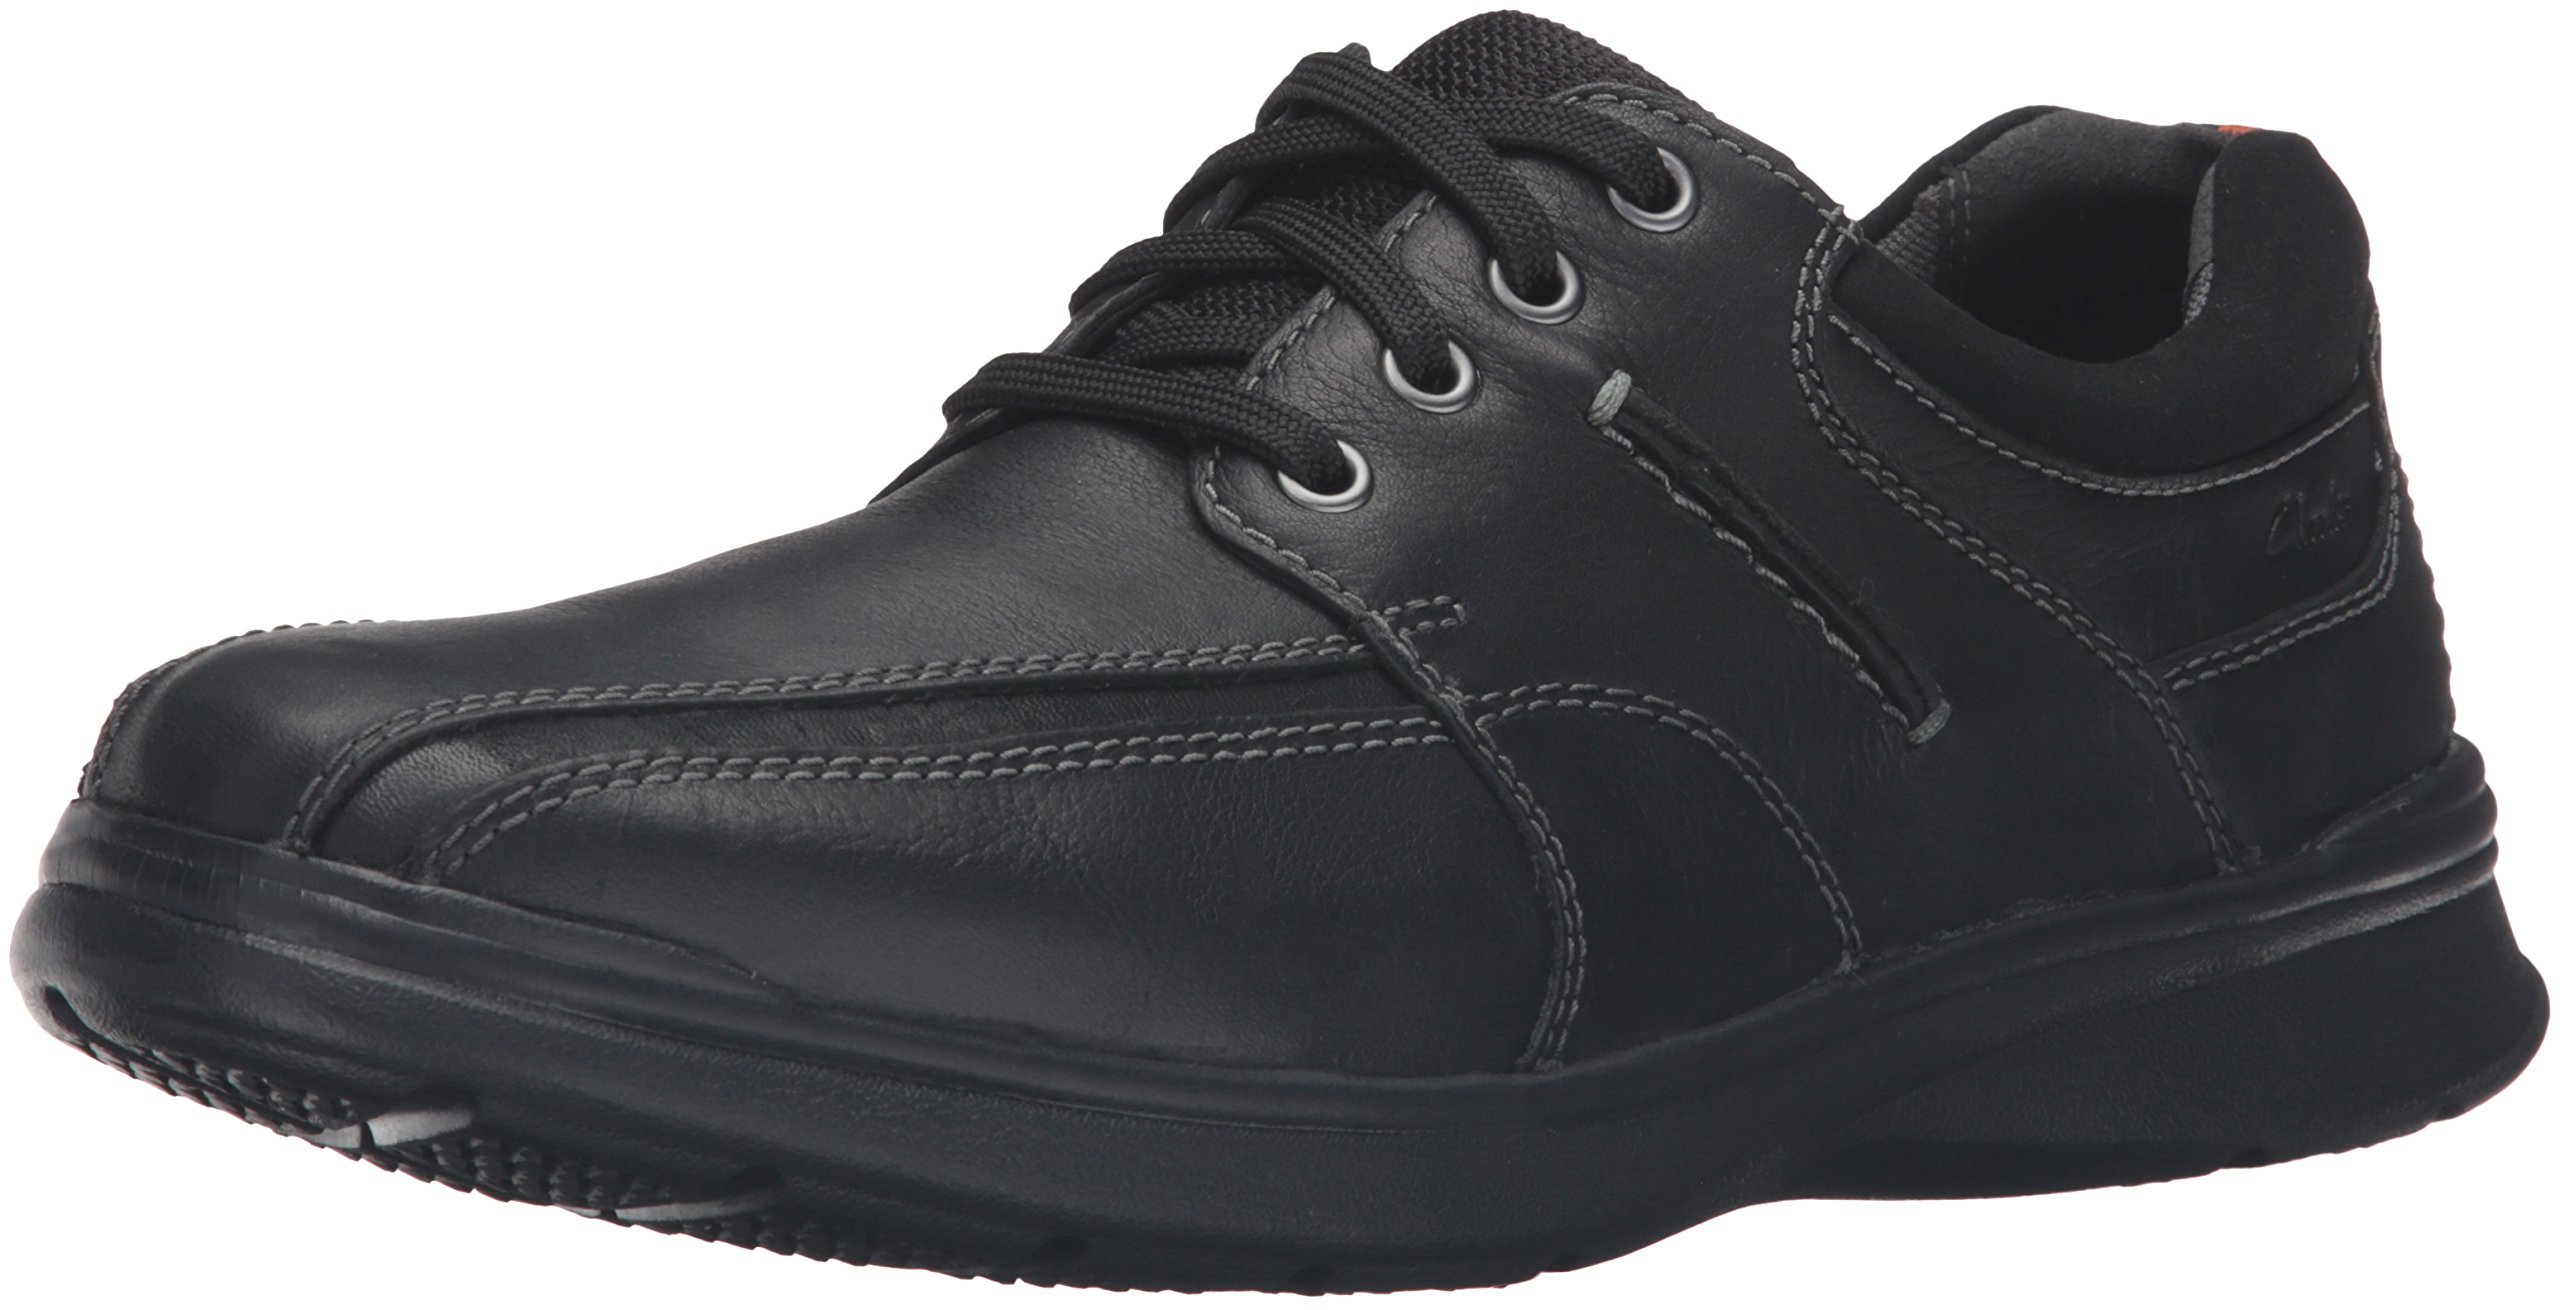 CLARKS Men's Cotrell Walk Oxford, Black, 9 M US